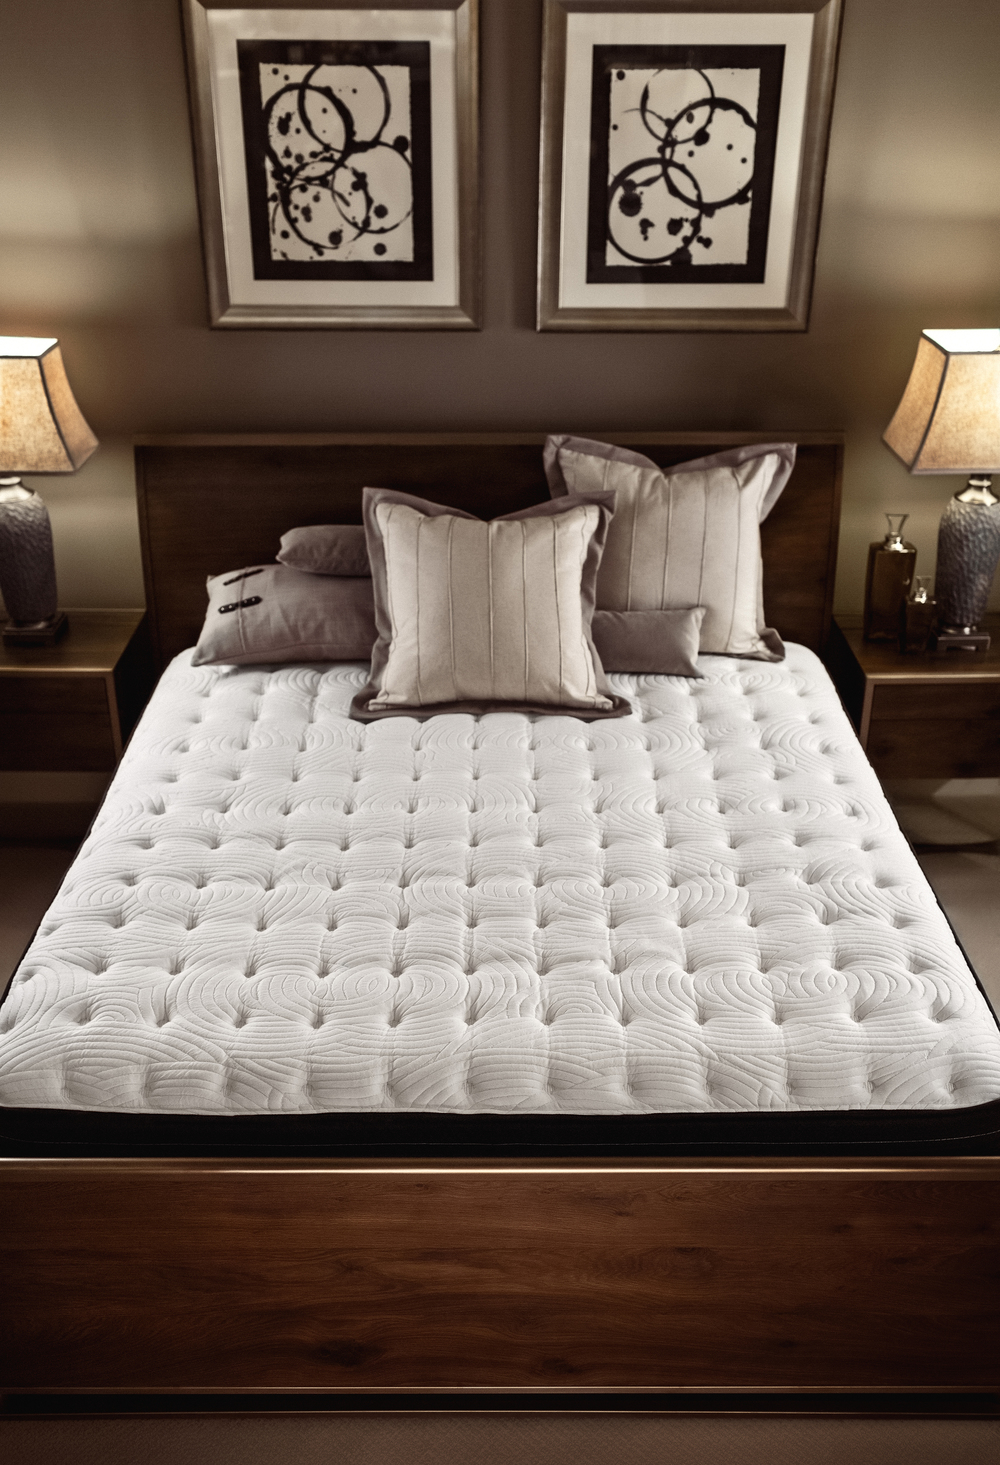 Larrabees_Select_Mattress-(5).jpg